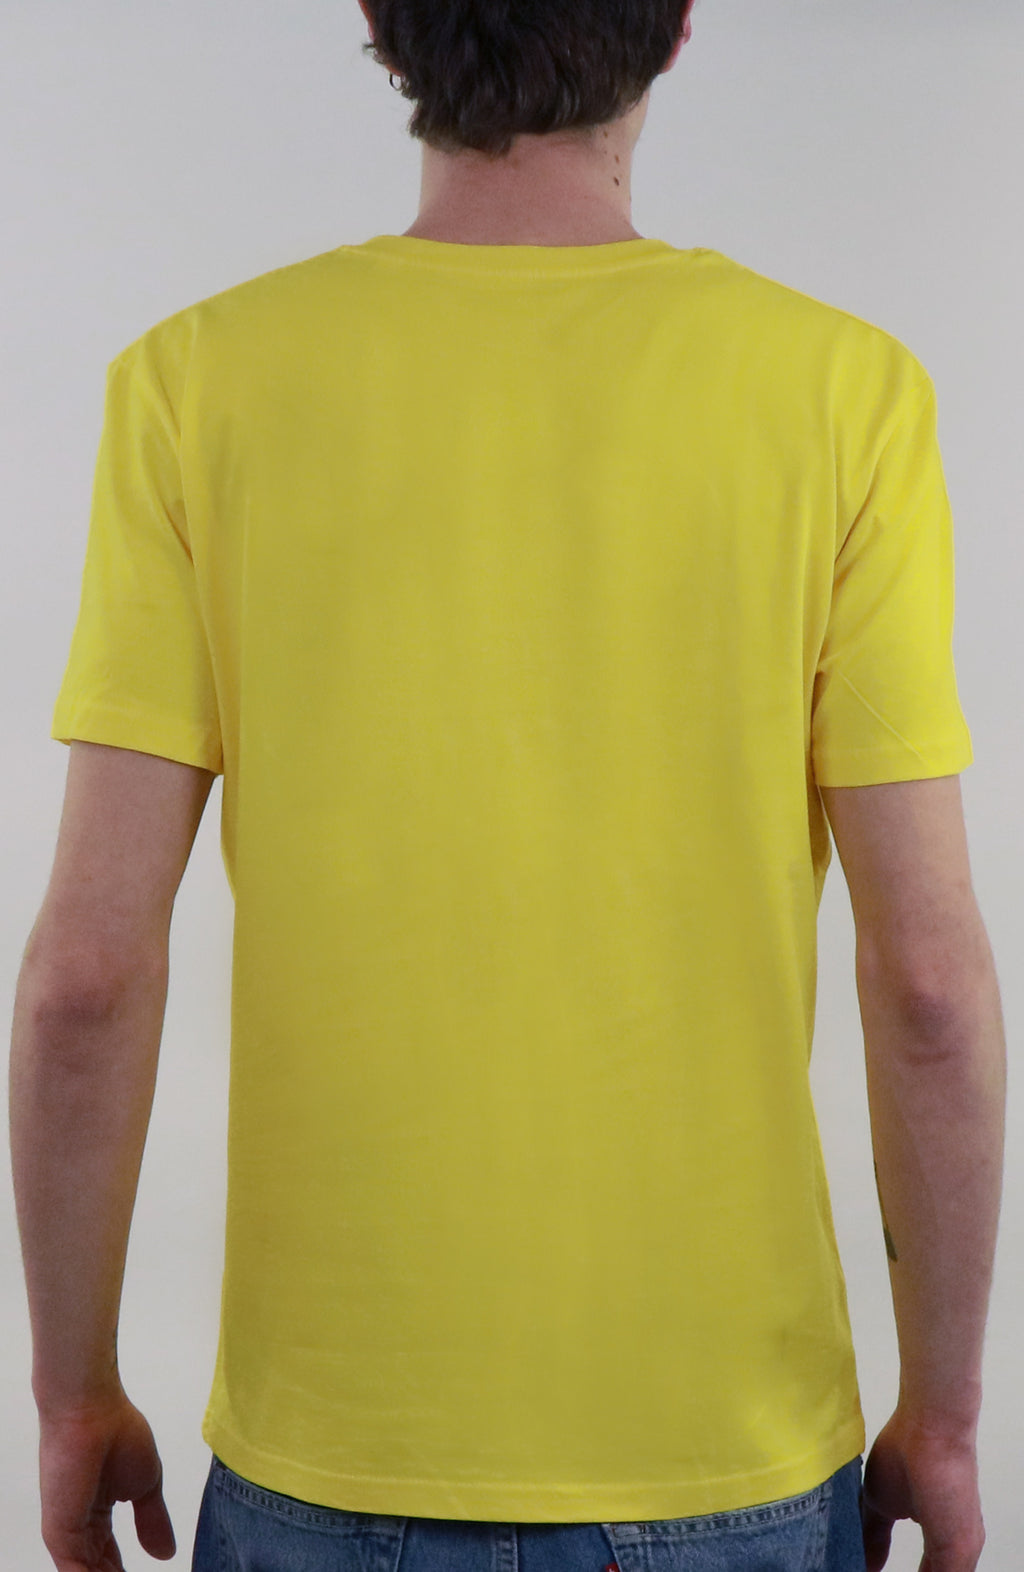 T-Shirt streetwear yellow for man by Farid Rueda